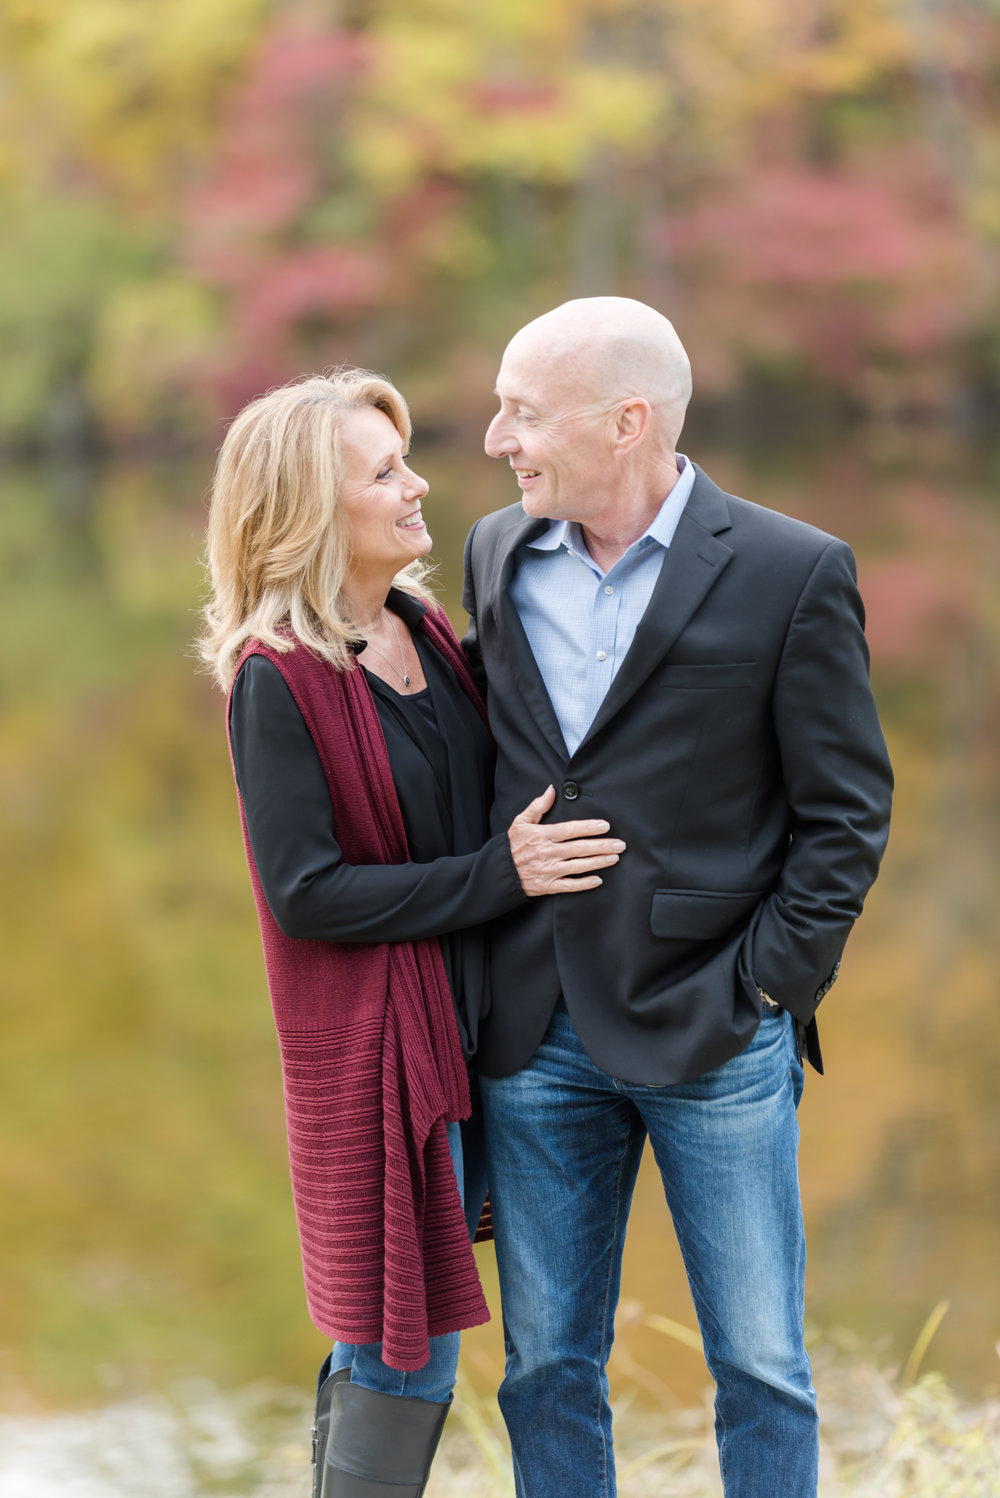 Best Engagement Session Locations in Indianapolis Eagle Creek Park